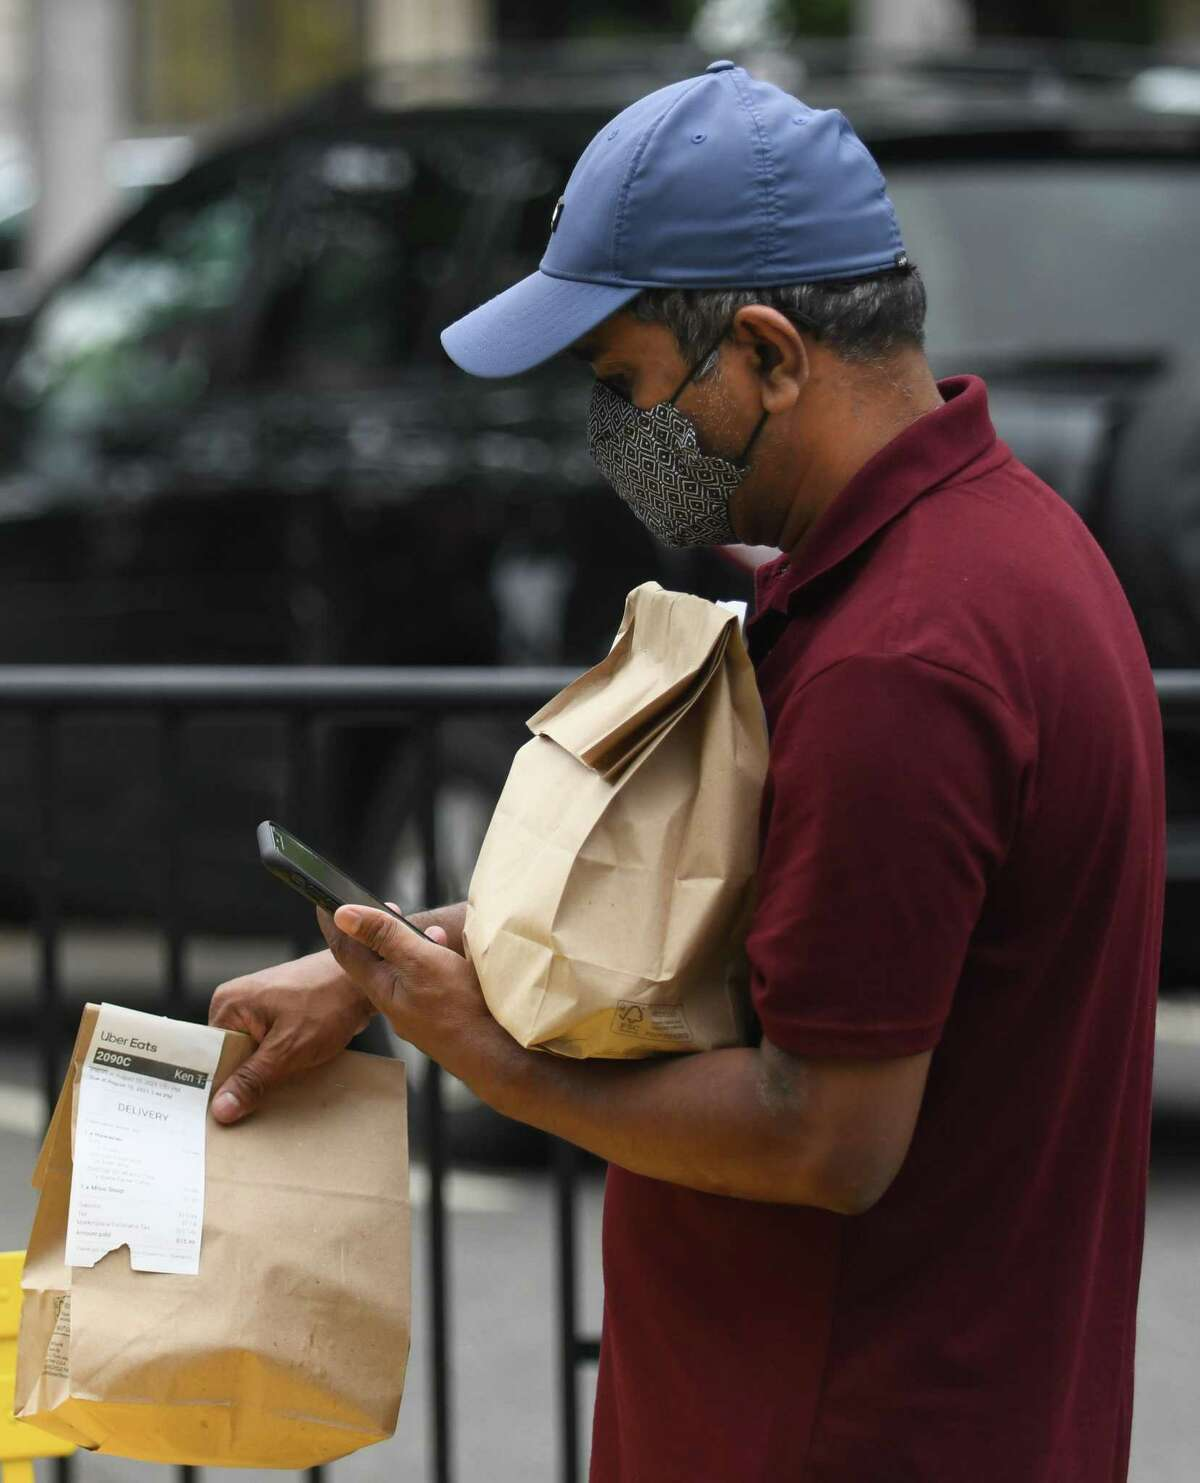 Uber Eats driver MD Hossain wears a mask while handling customers' delivery orders outside Fin II Japanese restaurant in Stamford, Conn. Tuesday, Aug. 10, 2021. As of Thursday, Mayor David Martin reinstated the mask mandate requiring residents to wear masks indoors or at any outdoor events held on city property with more than 100 attendees.